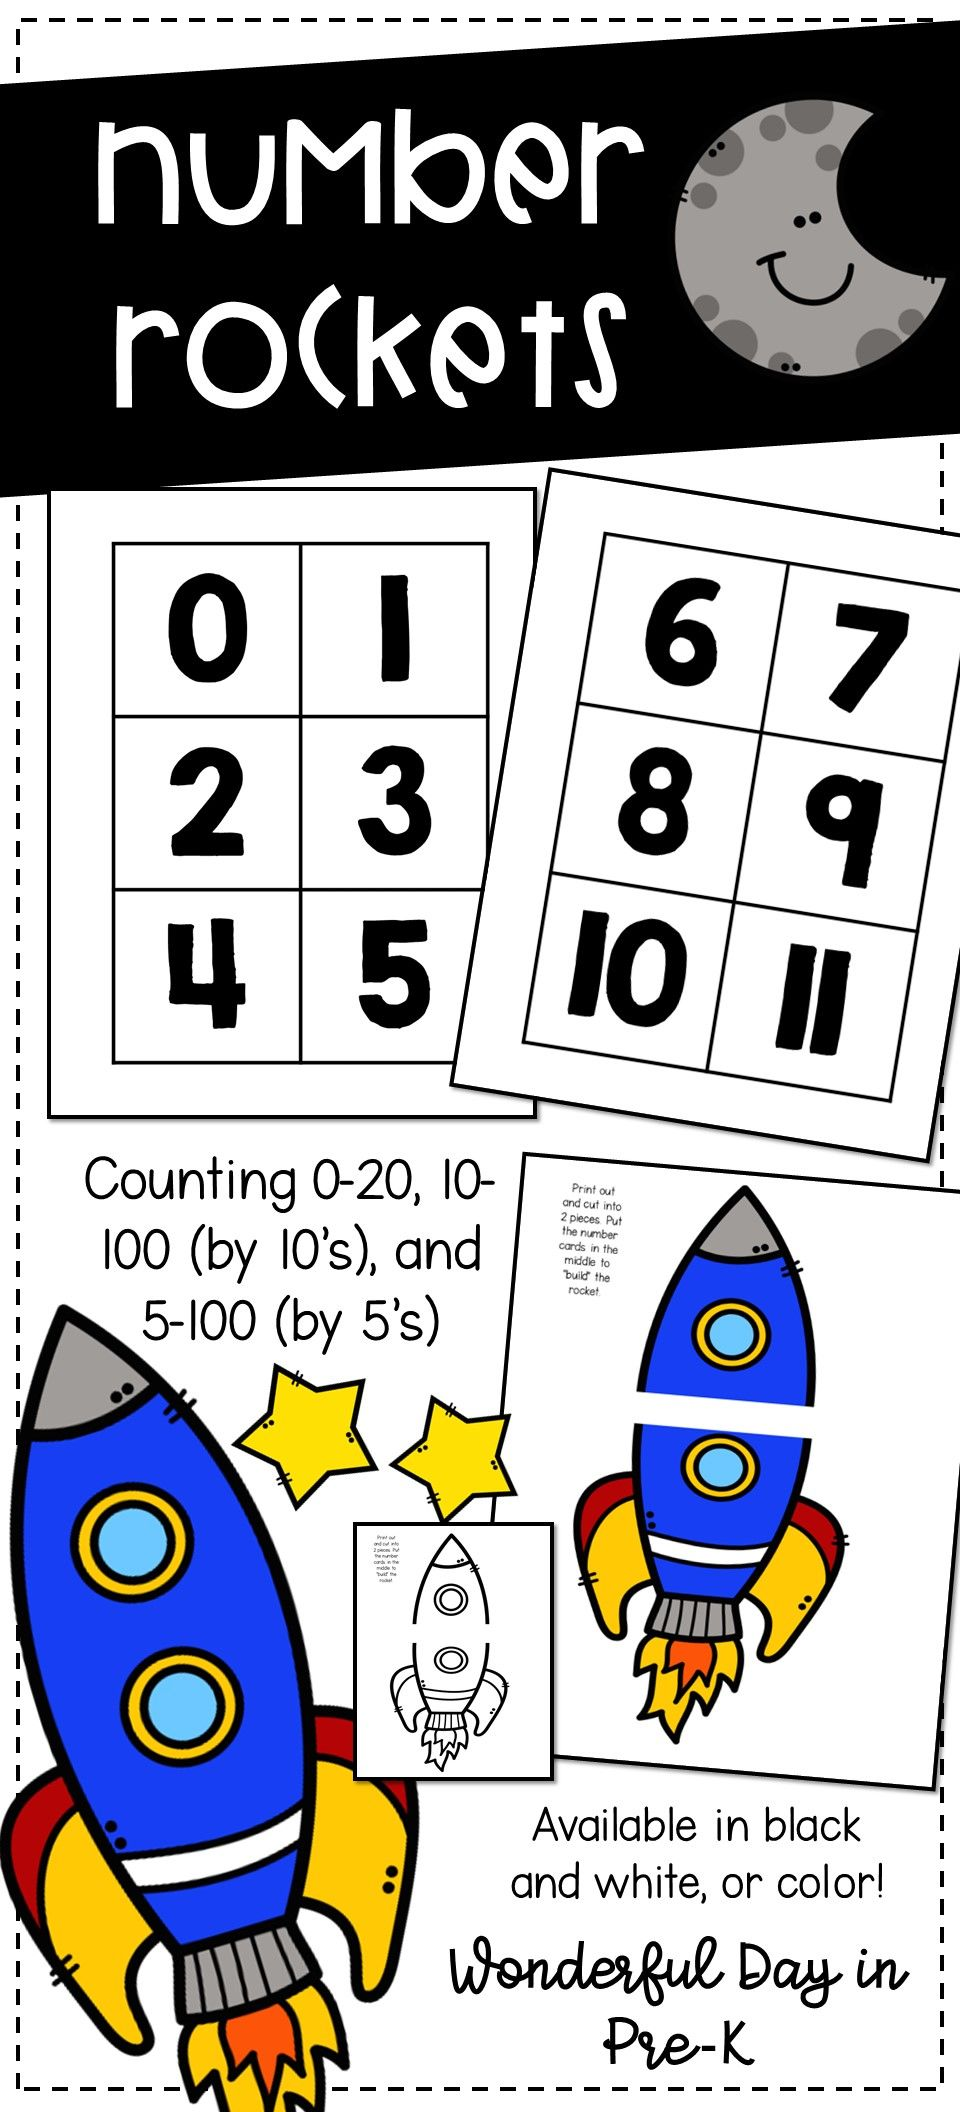 Build A Rocket With Numbers Can Print In Black And White Or Color And Rockets And Cards Come In Two Different S Counting Backwards Counting By 10 Space Theme [ 2112 x 960 Pixel ]